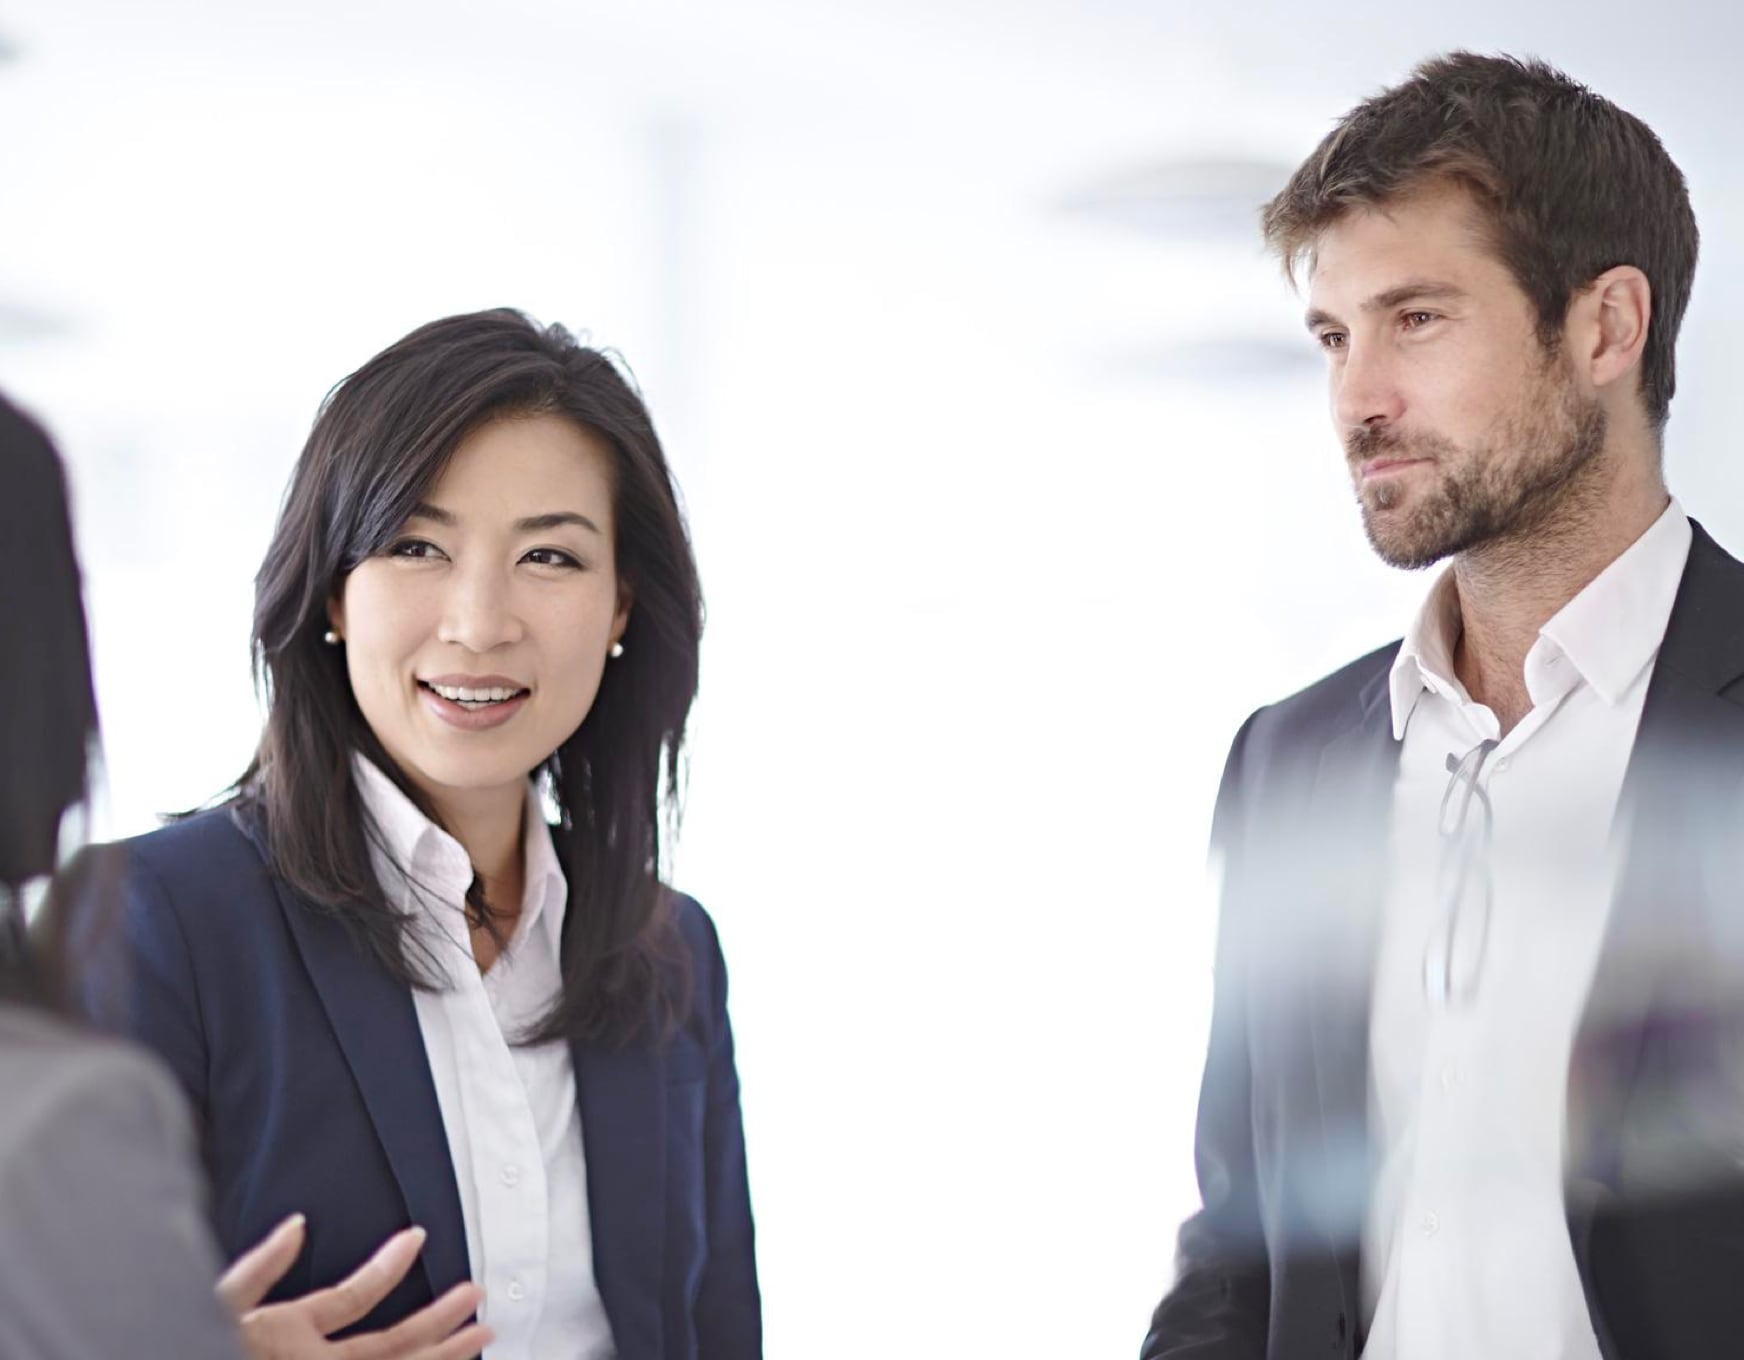 Case Study – First Foreign Partner at a Japanese Law Firm